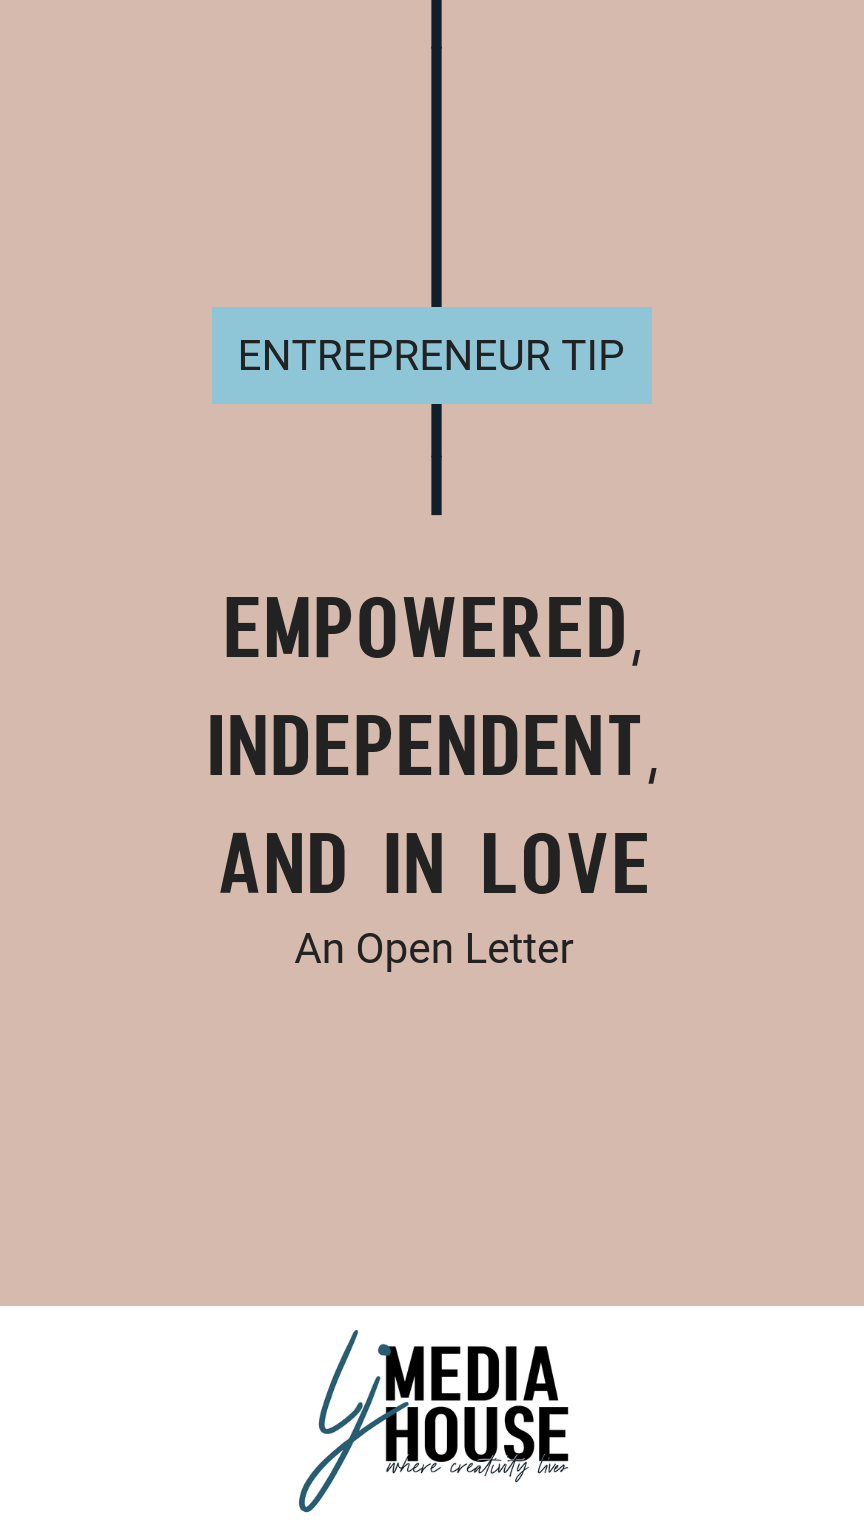 Empowered Independent and in love